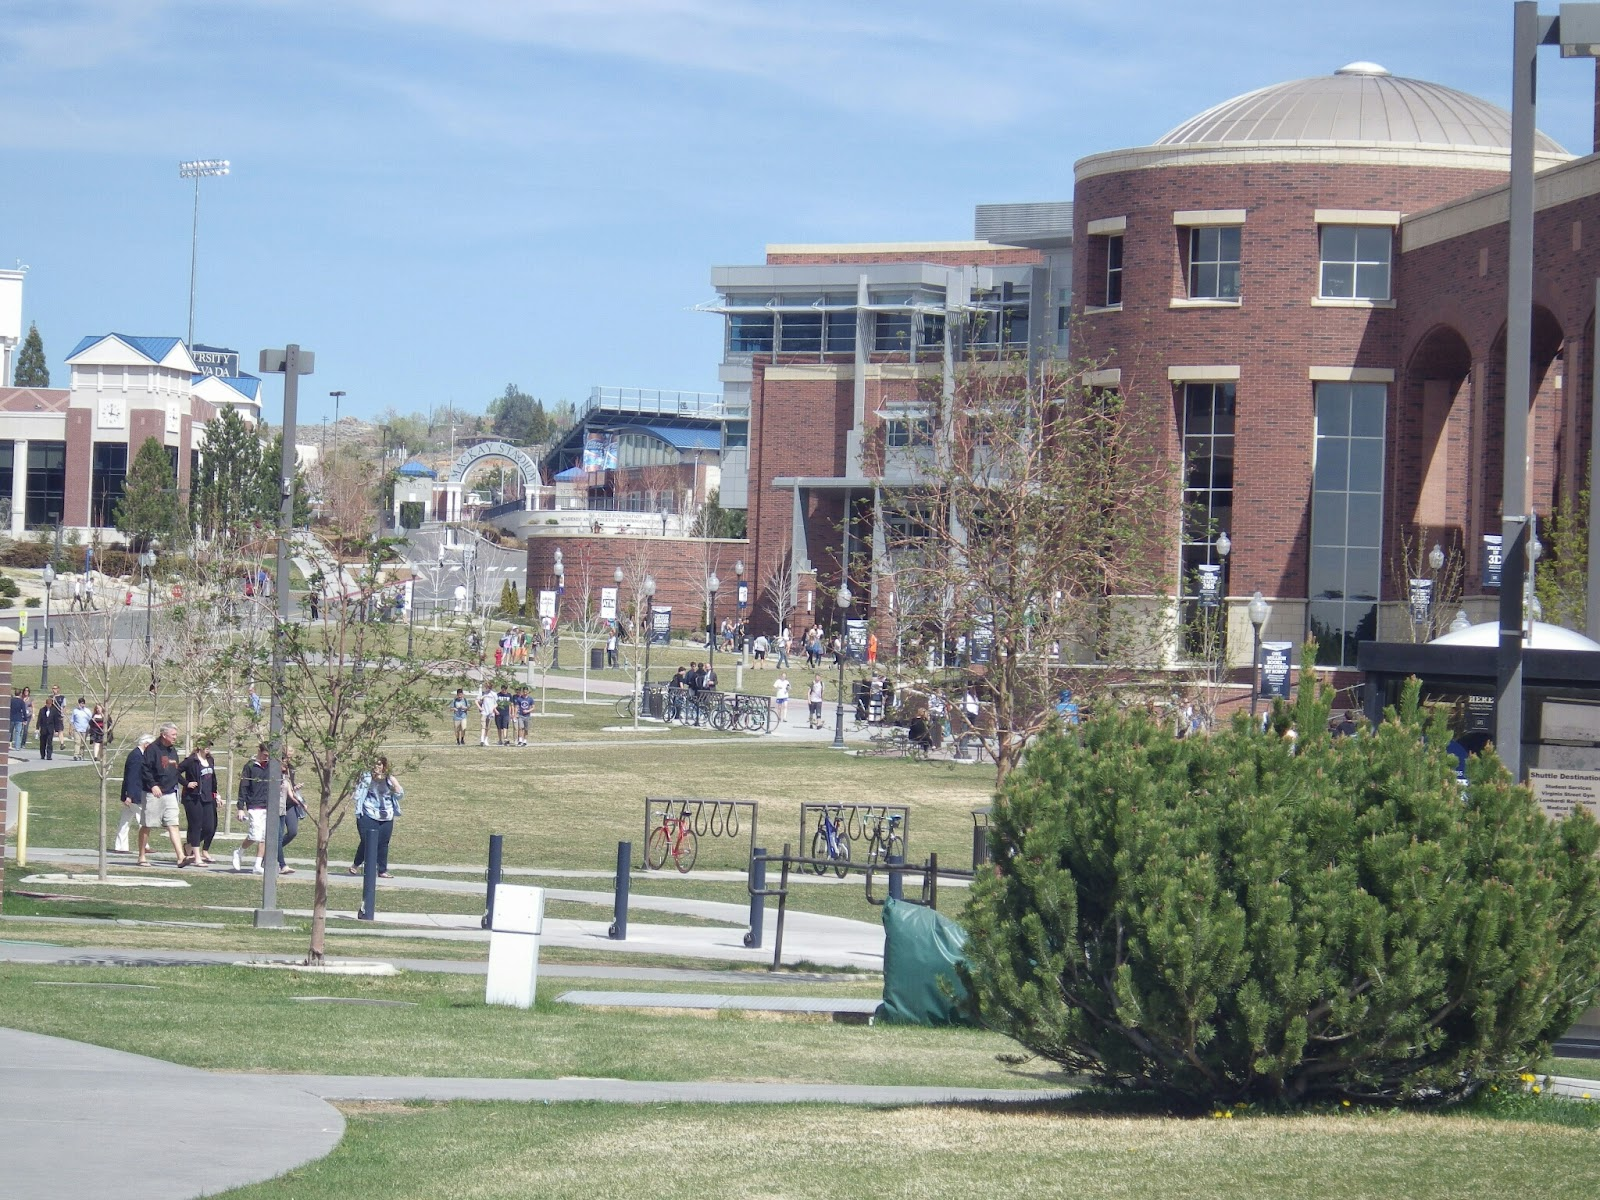 Http colleges usnews rankingsandreviews com best colleges university of nevada reno 2568 suhicounseling suhicounseling april 11 2014